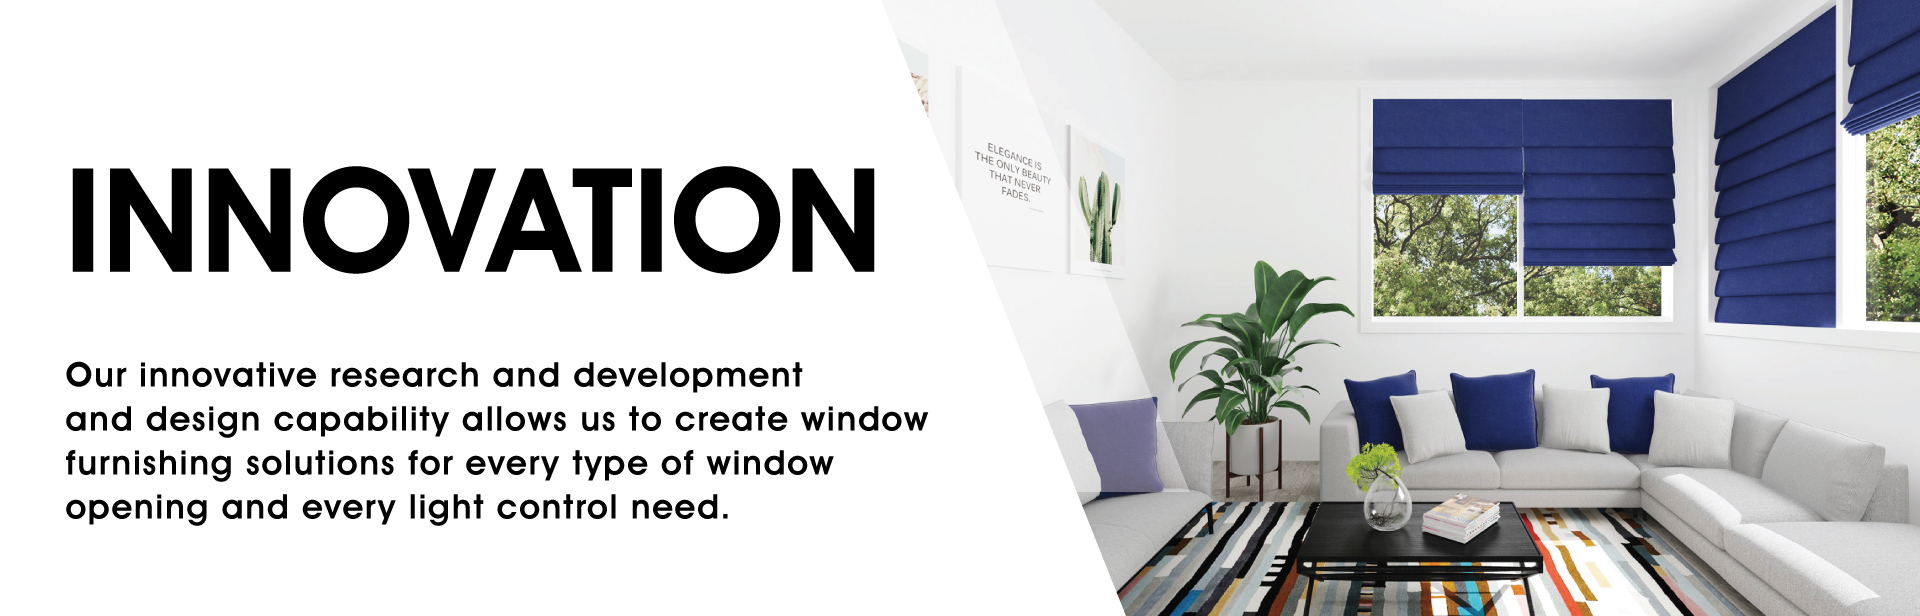 Innovation: Our innovative research and development and design capability allows us to create window furnishing solutions for every type of window opening and every light control need.